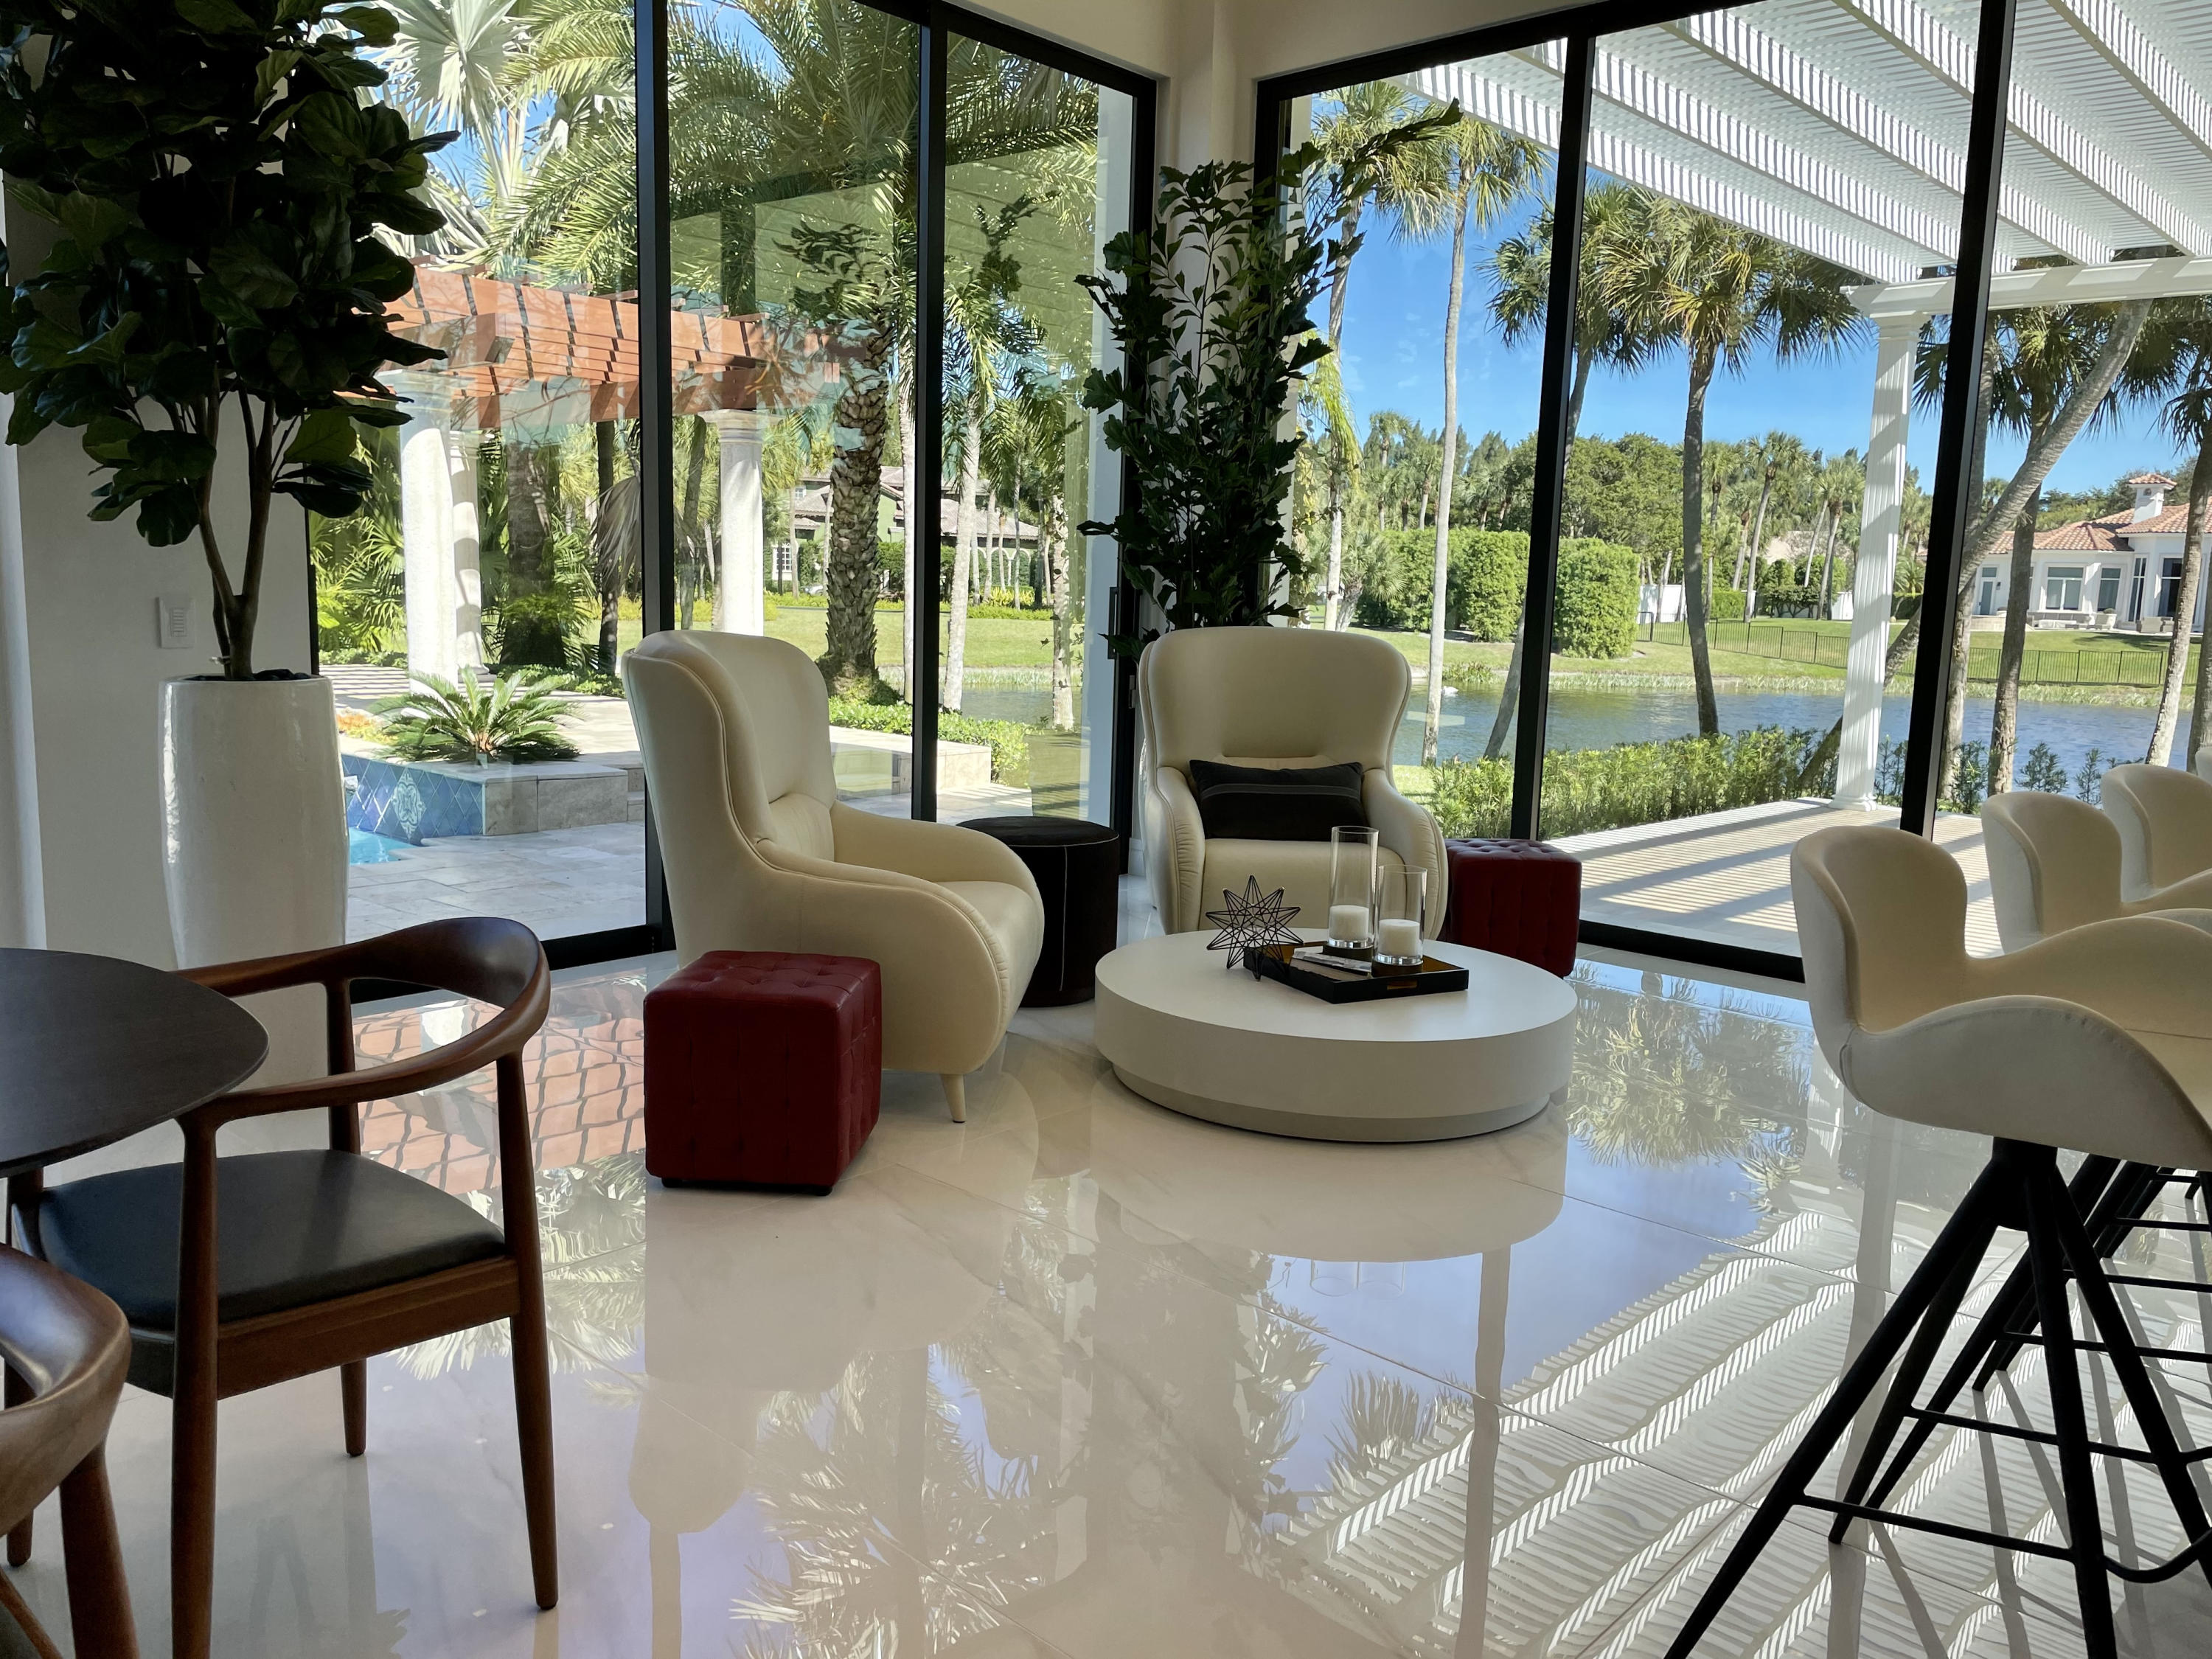 16485 Bridlewood Circle, Delray Beach, Florida 33445, 5 Bedrooms Bedrooms, ,8.2 BathroomsBathrooms,Single Family Detached,For Sale,Bridlewood,RX-10653553